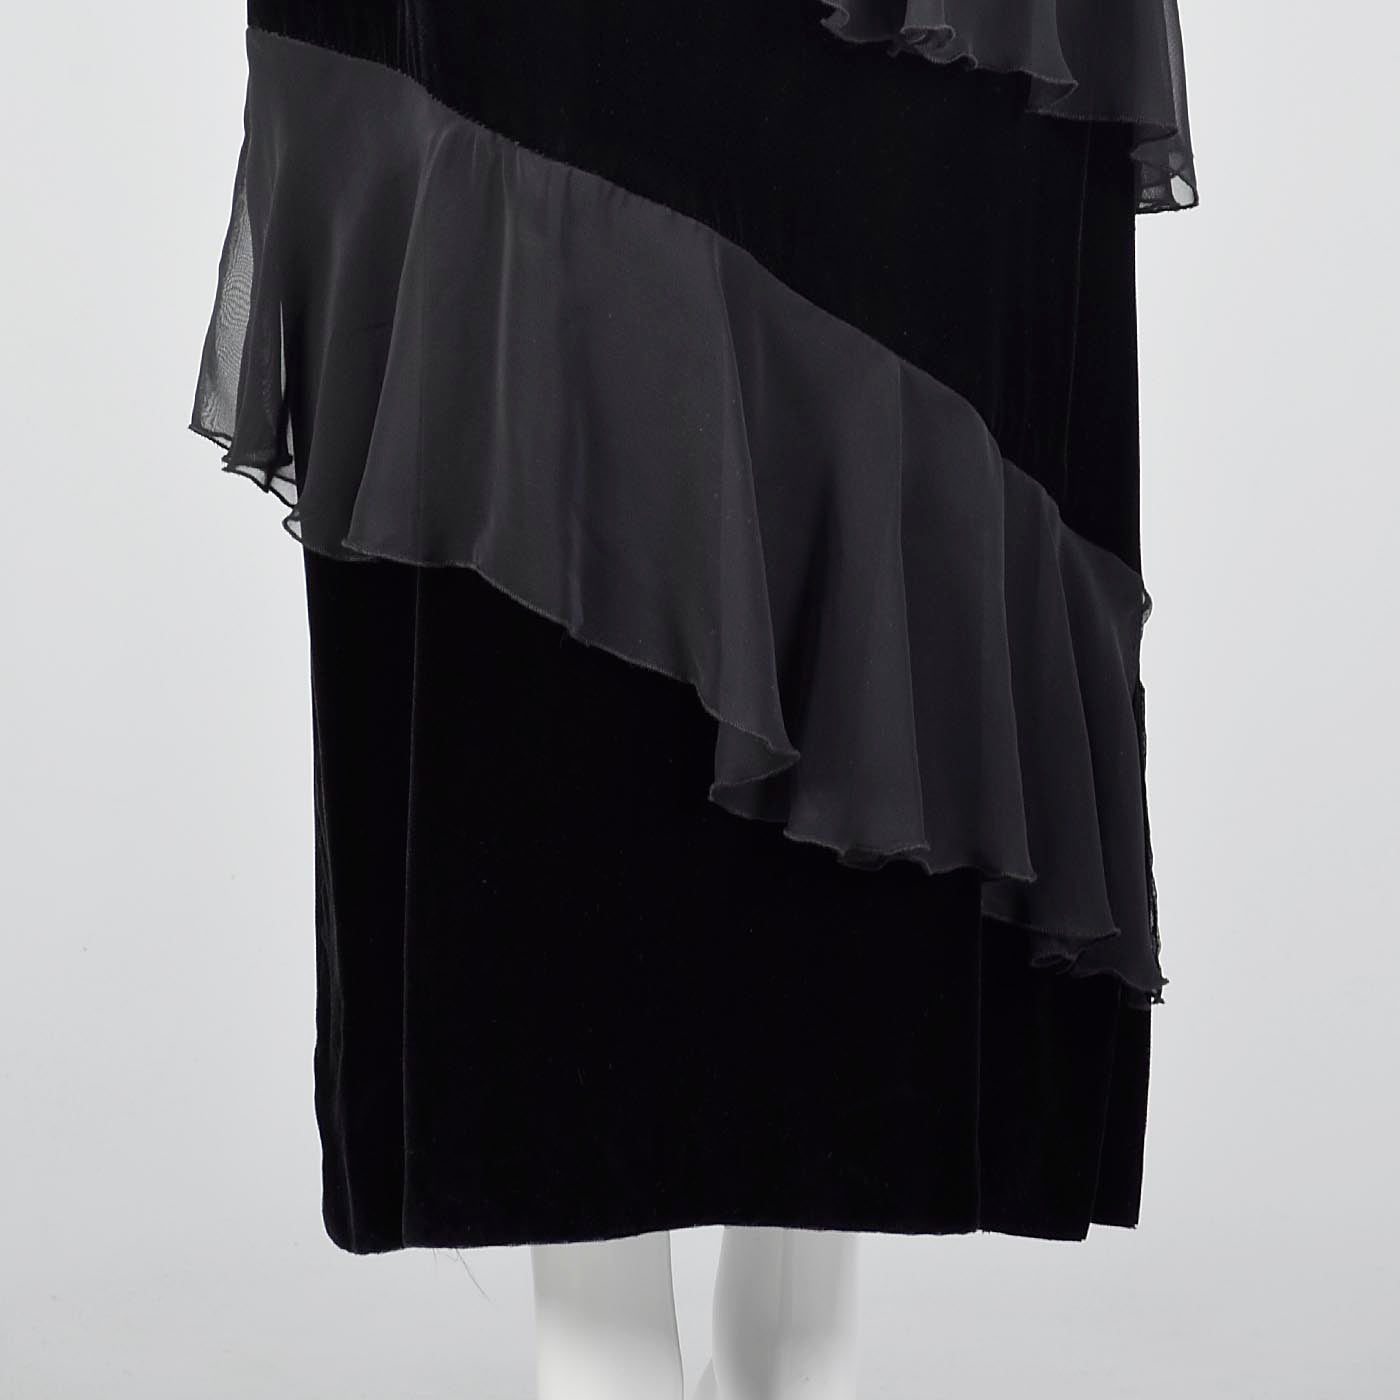 1980s Black Velvet Maxi Dress with Chiffon Ruffle